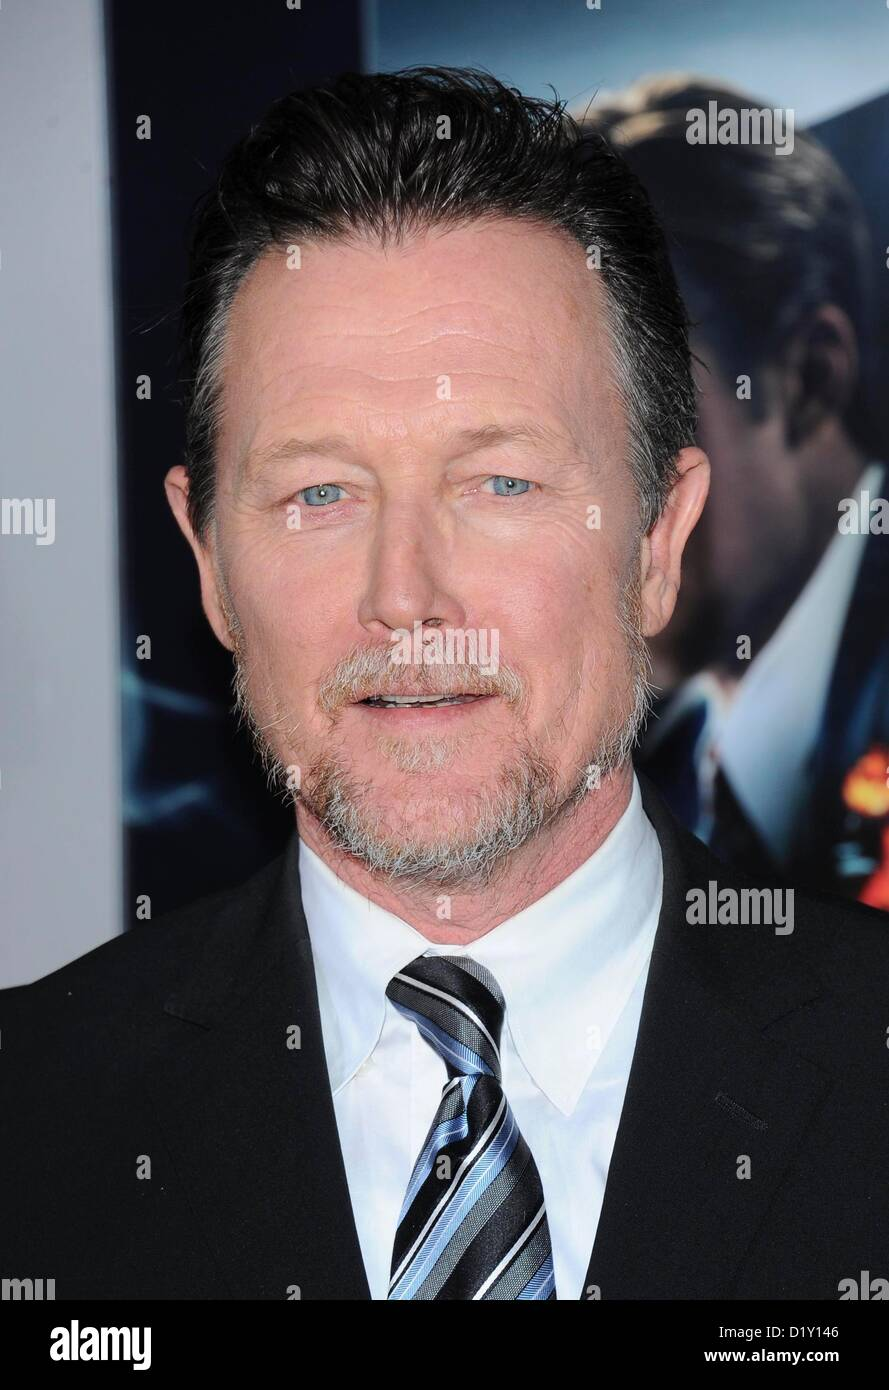 Actor Robert Patrick arrives at the film premiere for 'Gangster Squad' at the Chinese Theatre in Hollywood, - Stock Image